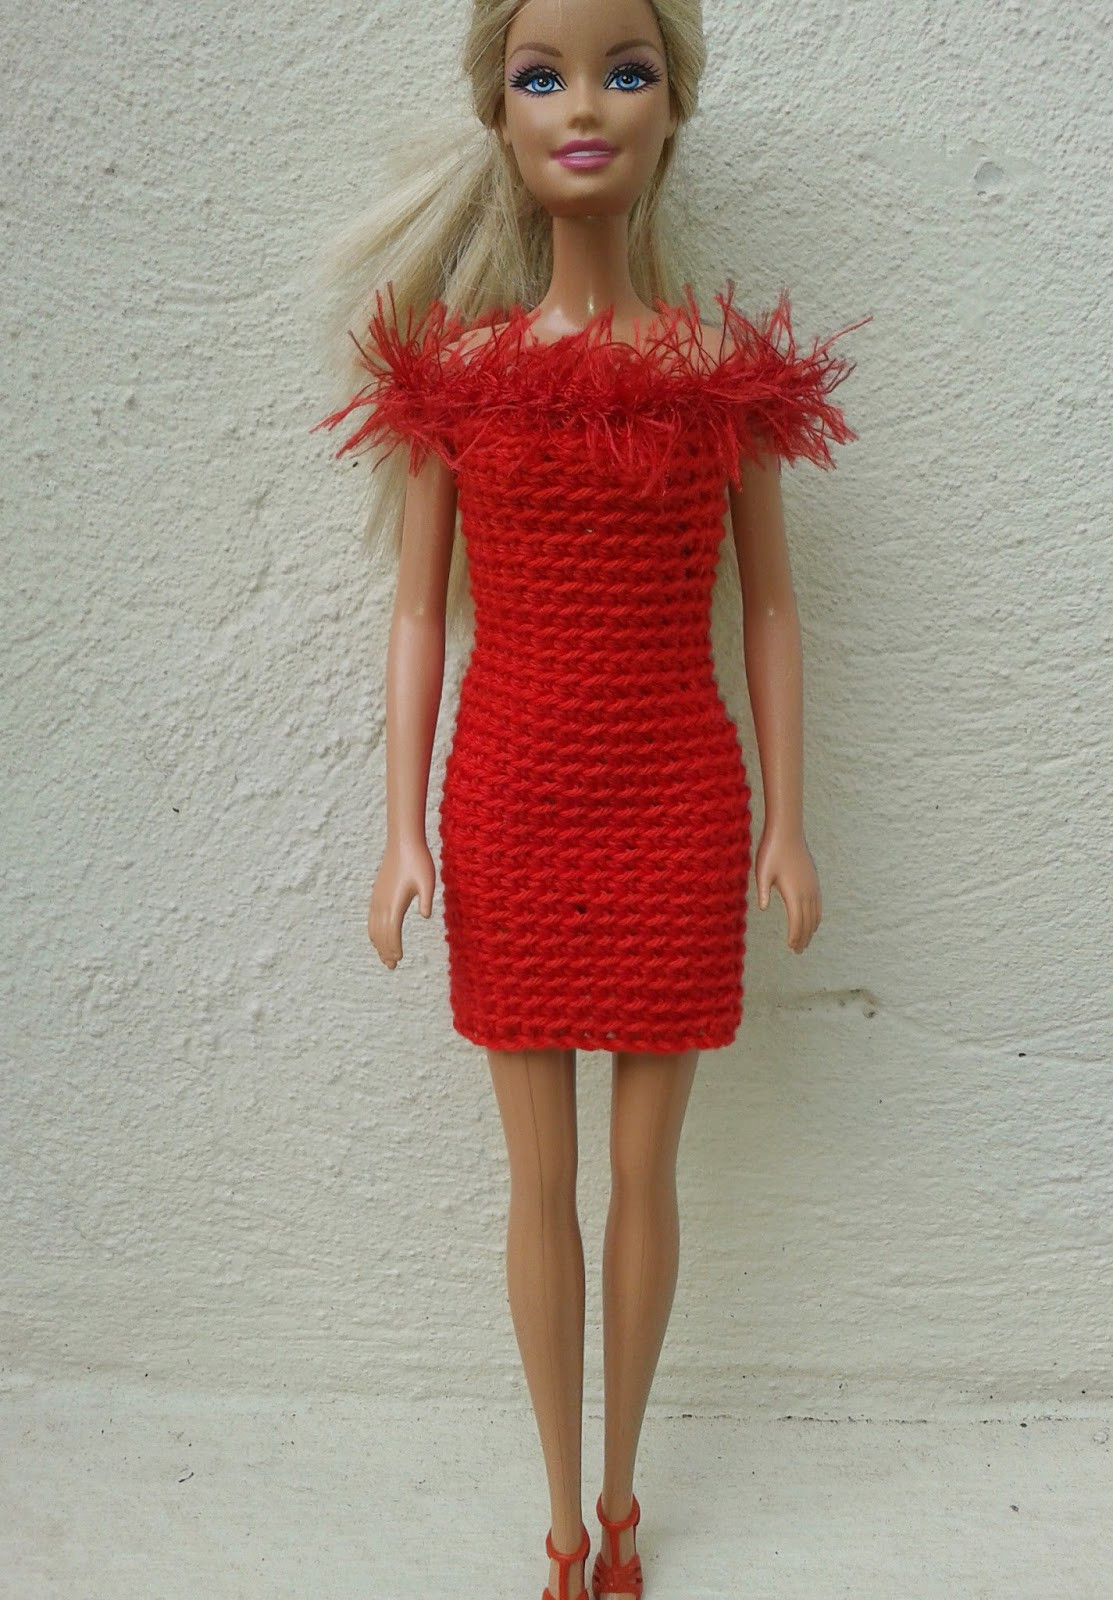 Crochet Dresses Lovely Linmary Knits Barbie In Red Crochet Dresses Of Top 49 Pictures Crochet Dresses